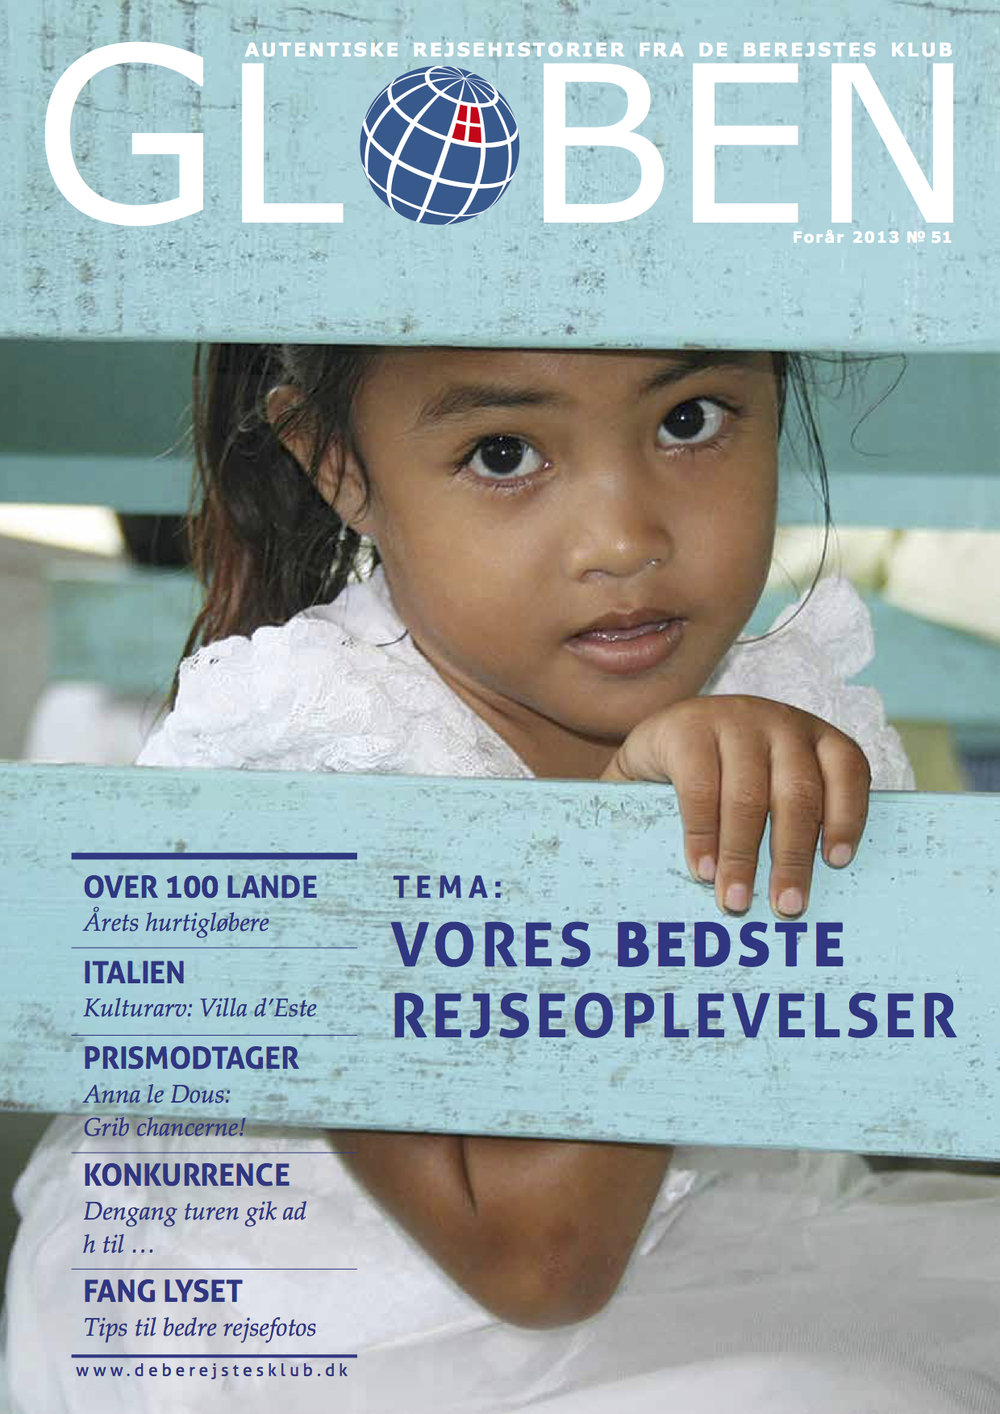 Issue 51: Vores Bedste Rejseoplevelser   The theme for this issue is Our Best Travel Experiences, and it tells the stories of club members tracing the parents' past in Sierra Leone, expedition in the Solomon Islands, wedding adventure in Italy, and much more. Download the issue  here .